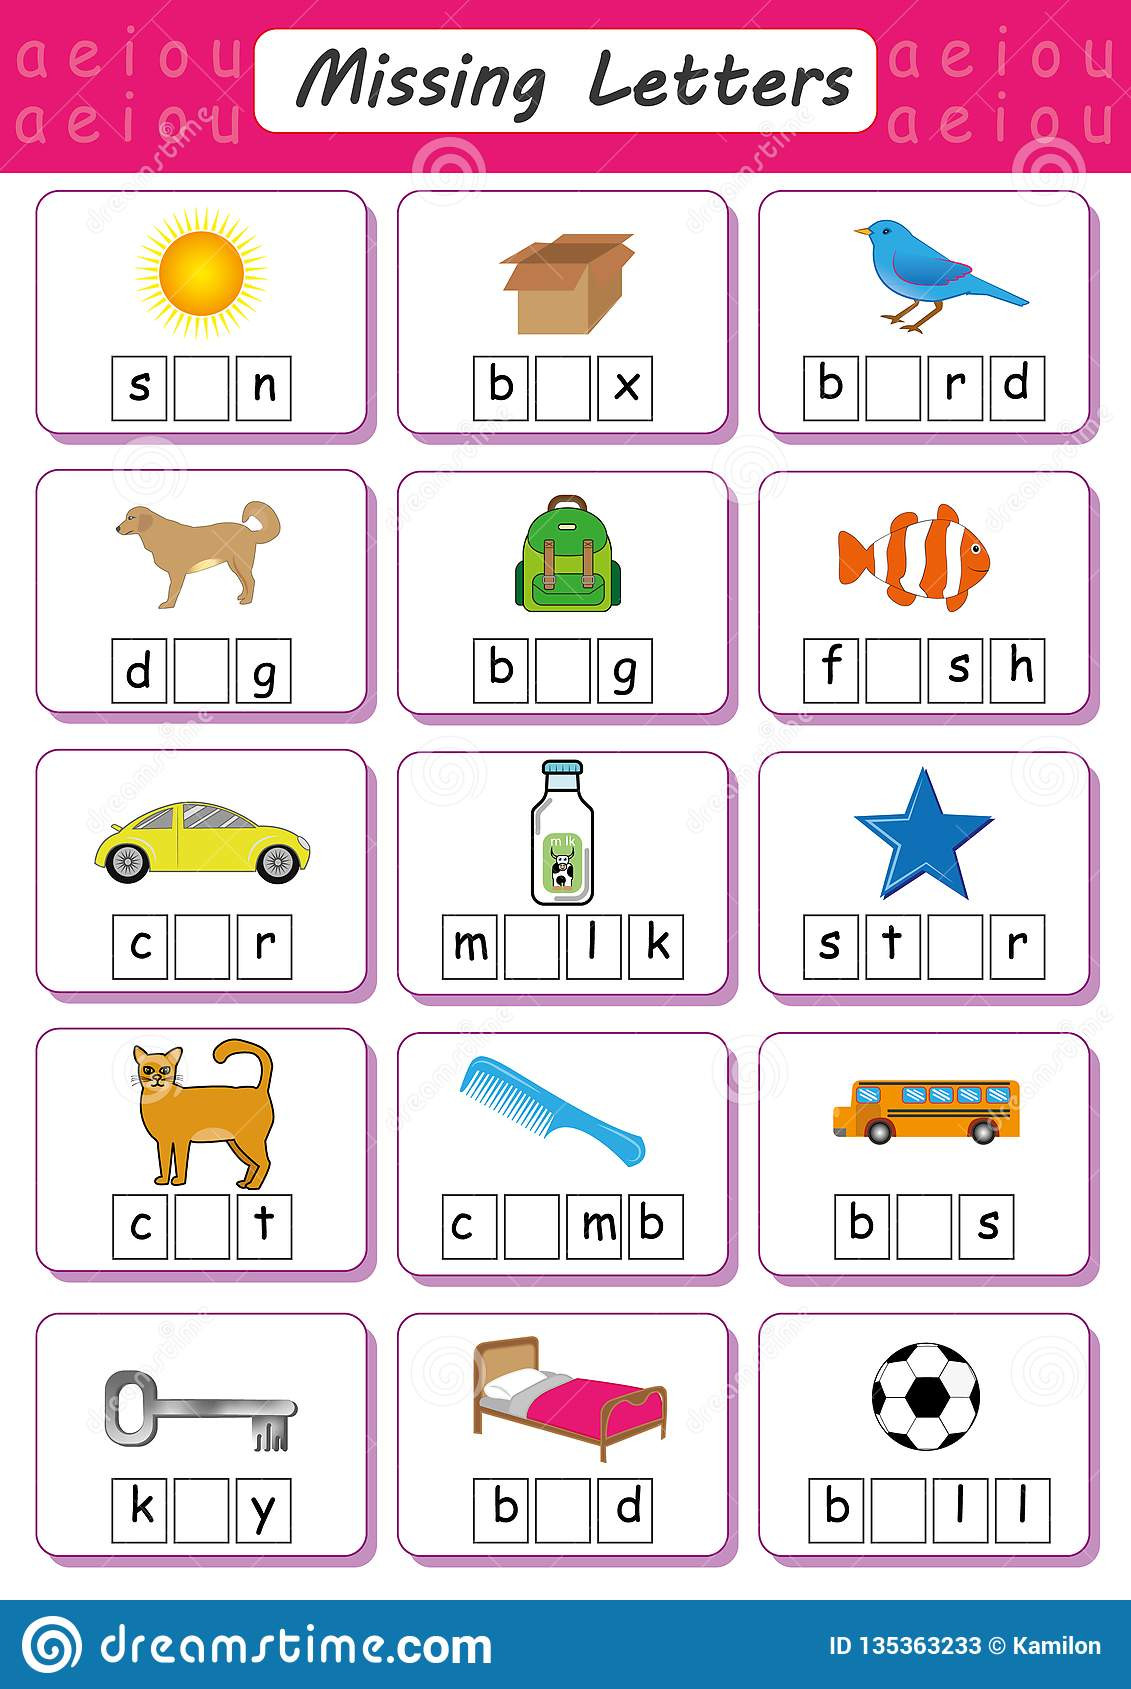 Vowel Worksheets for Kindergarten Write Missing Letter Write the Missing Vowel Worksheet for